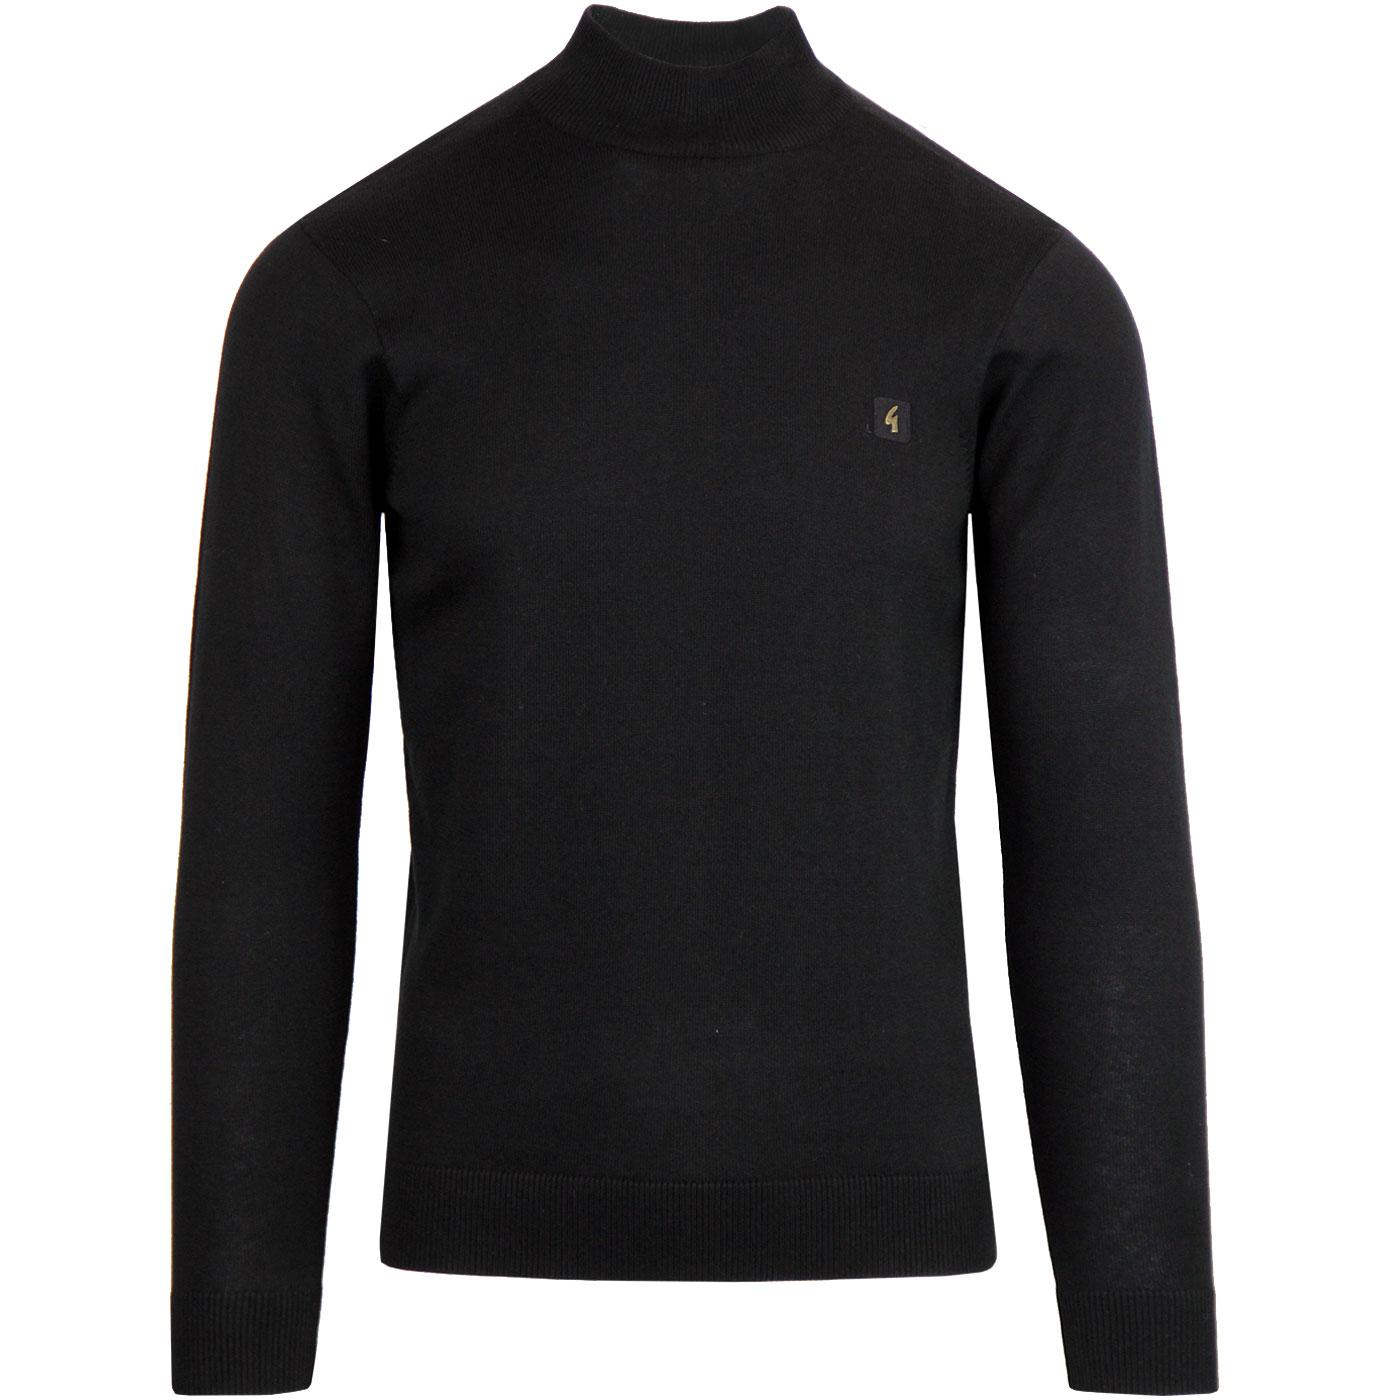 Duke GABICCI VINTAGE Retro Turtle Neck Jumper (B)